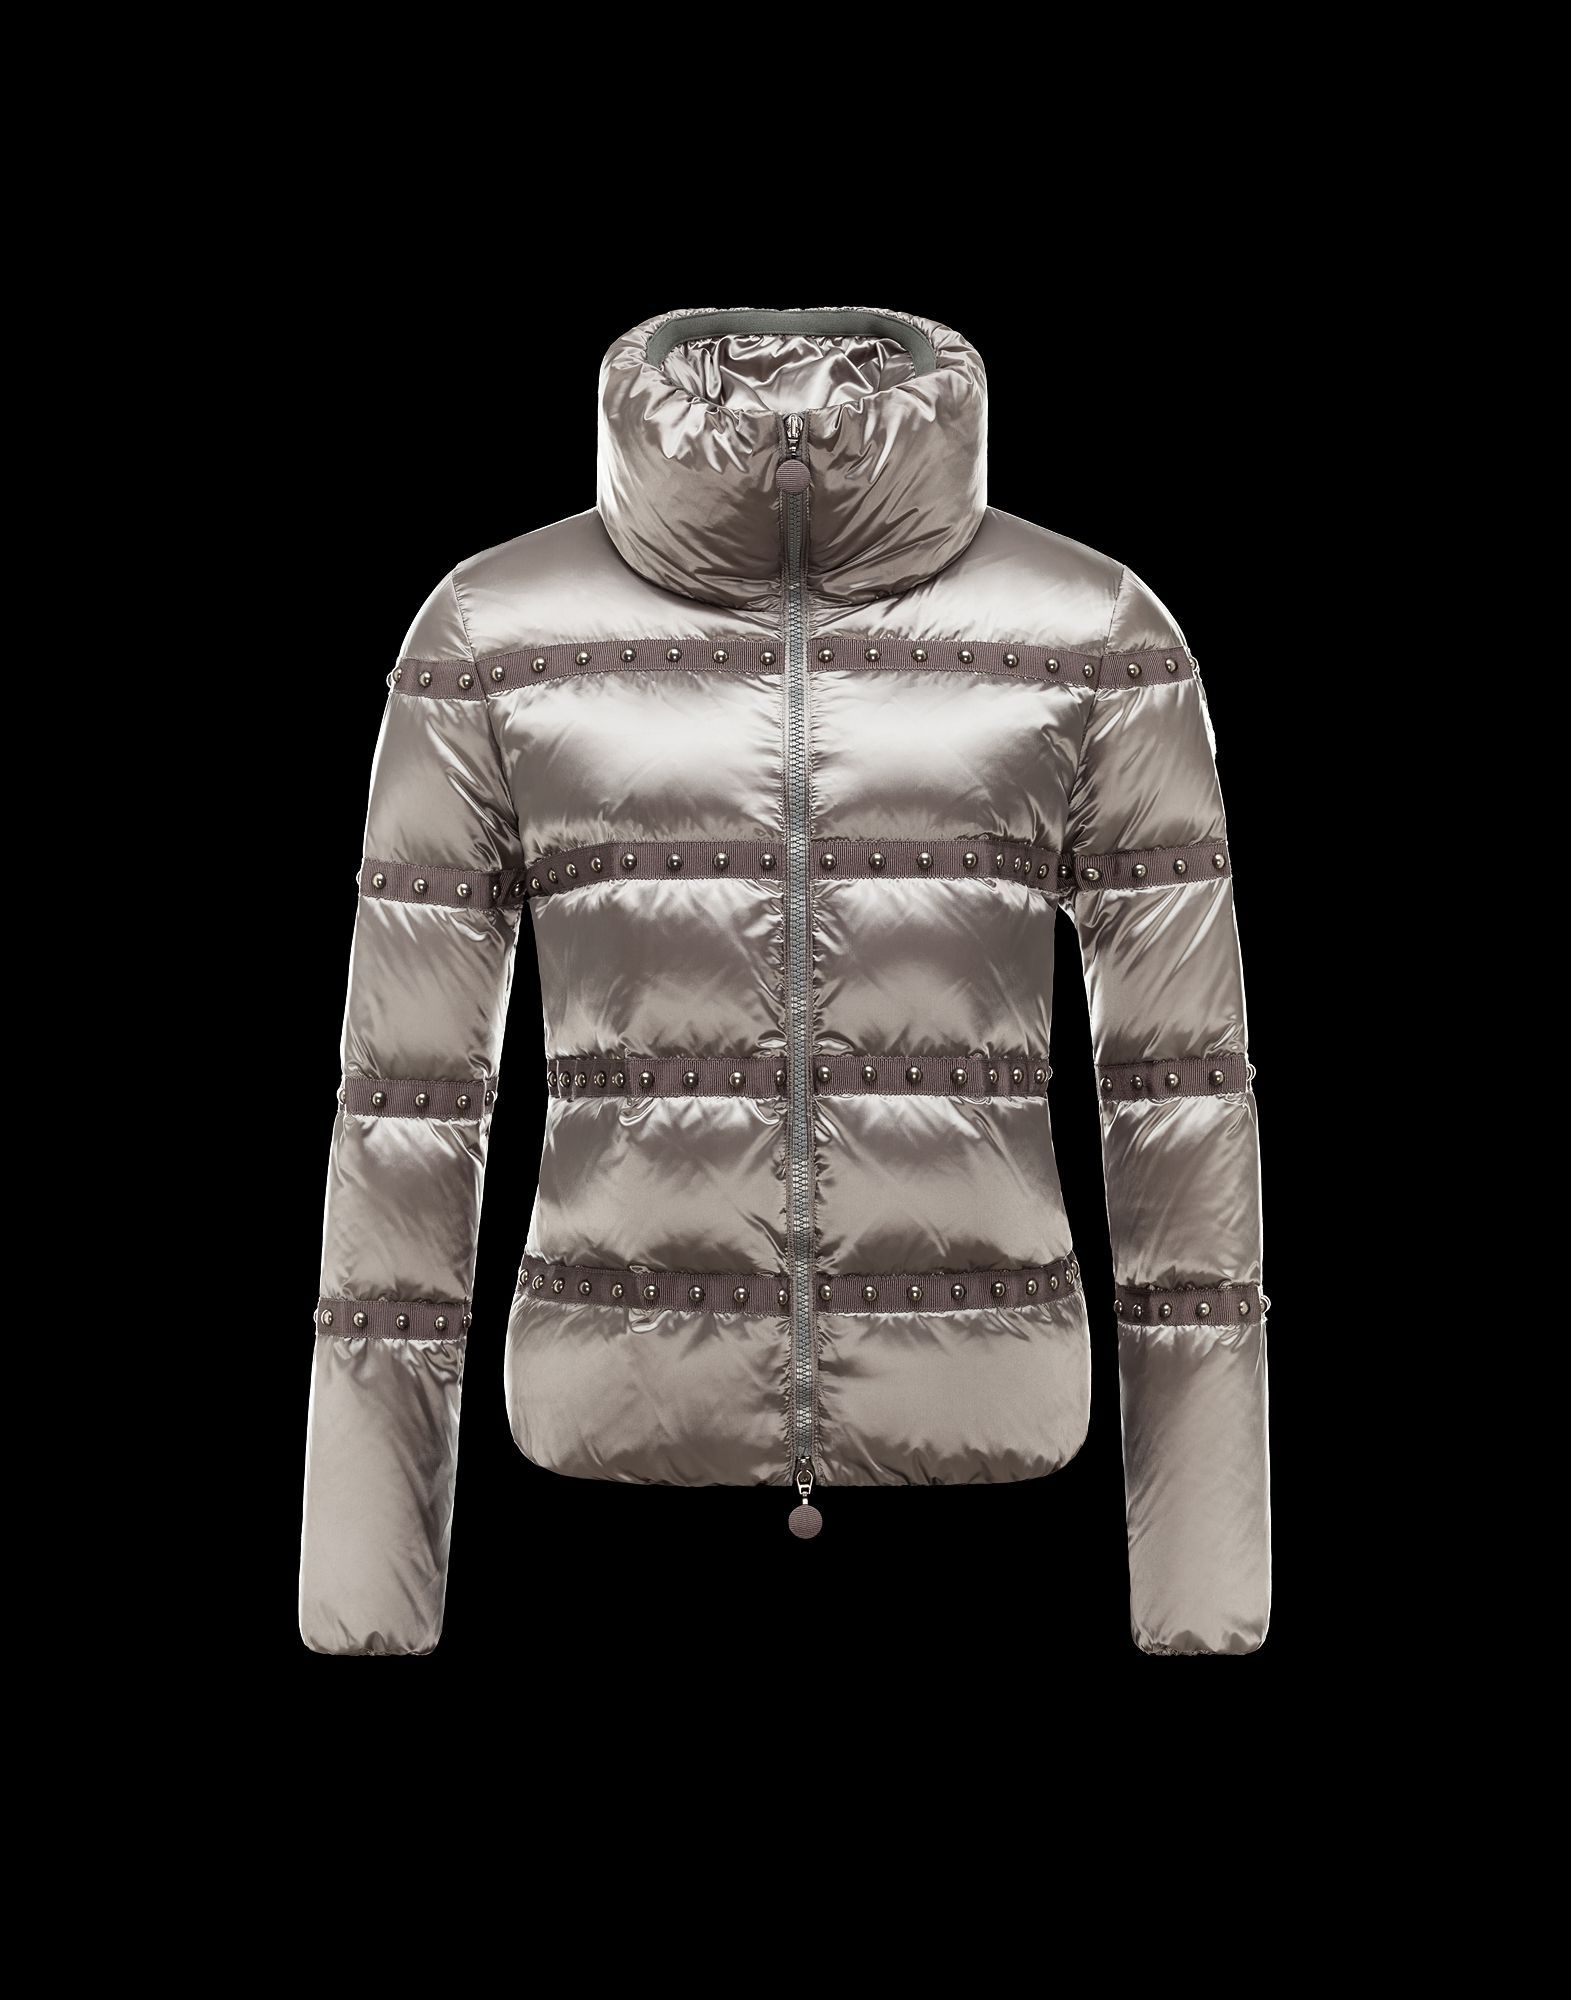 748564f56 Jacket Women Moncler - Original products on store.moncler.com | Ski ...